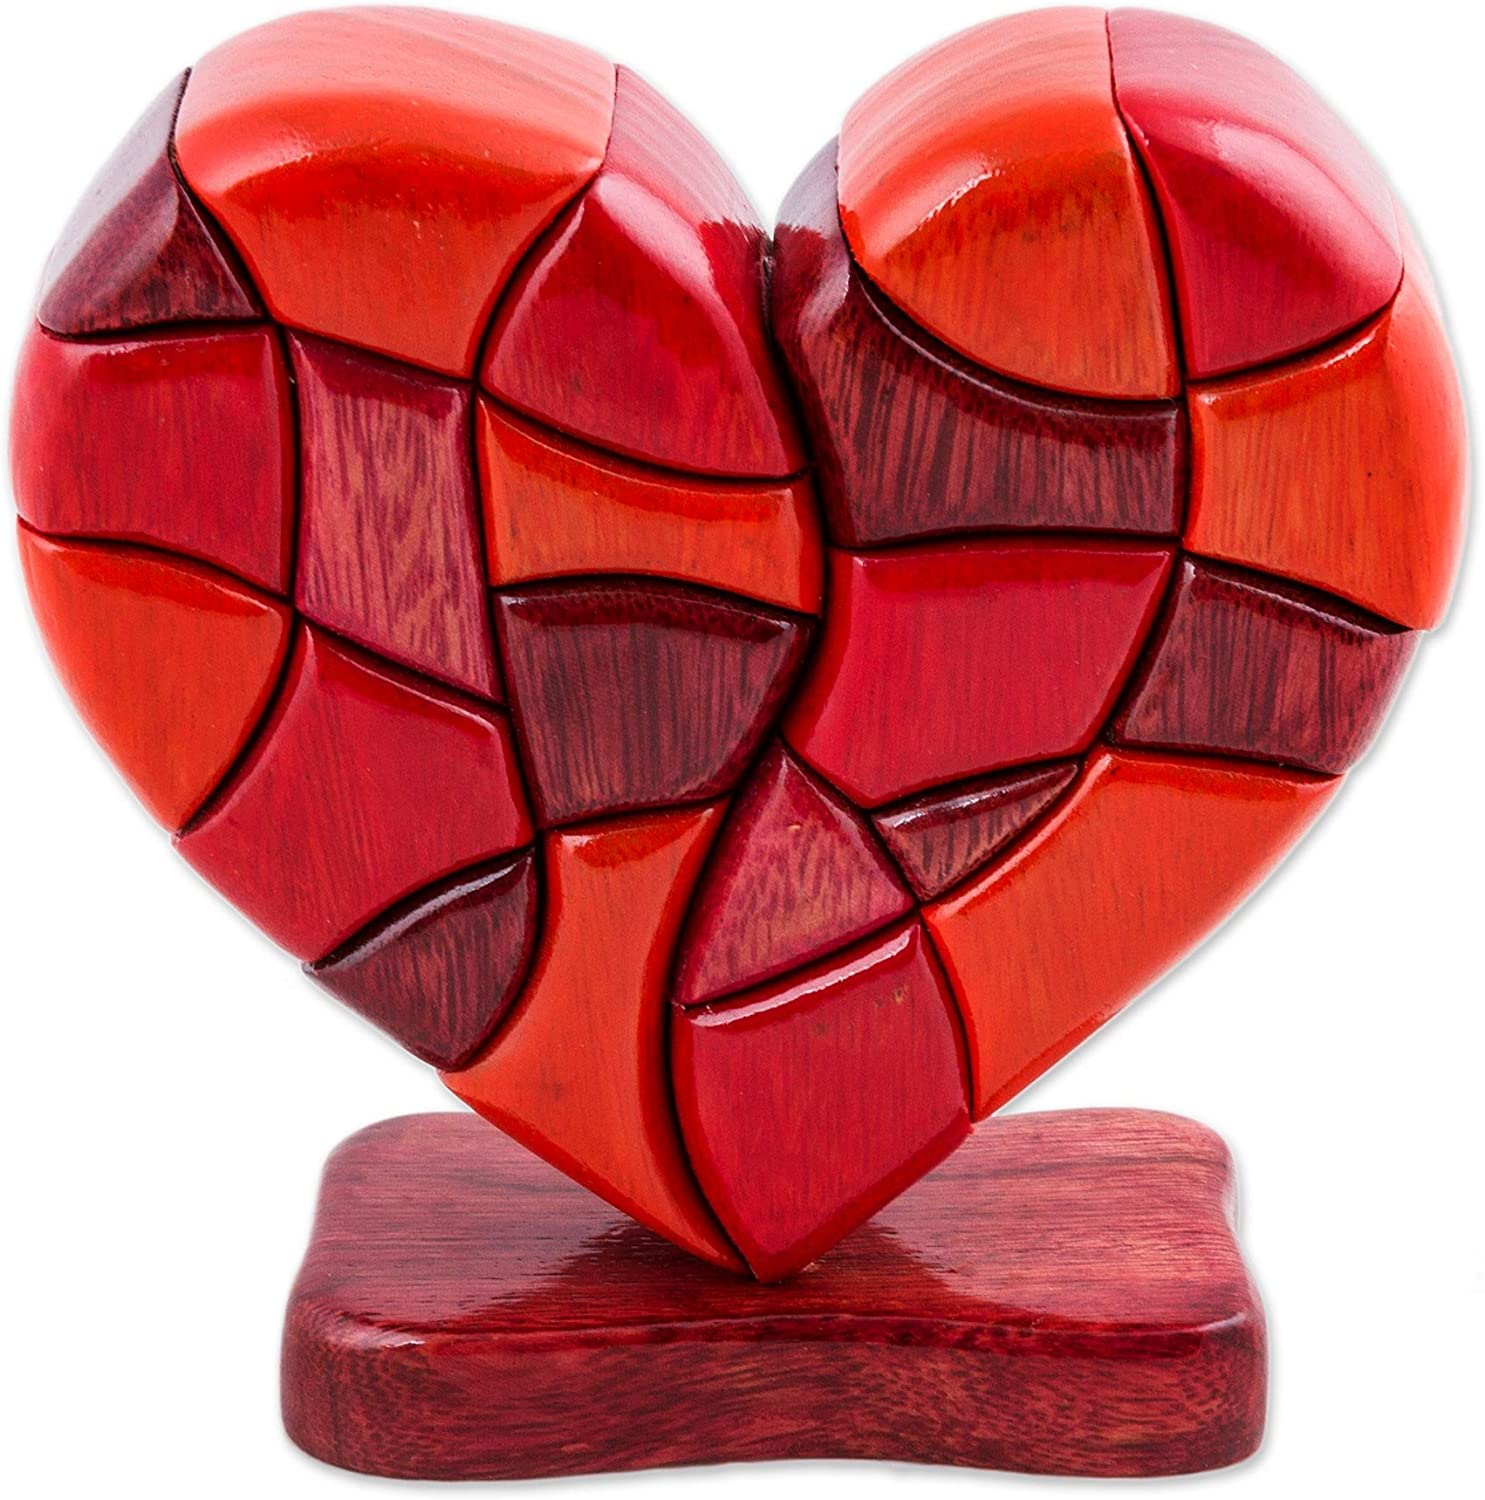 """NOVICA Red Romantic Love Heart Shaped Wood Sculpture, 6.25"""" Tall 'Heart of Love'"""